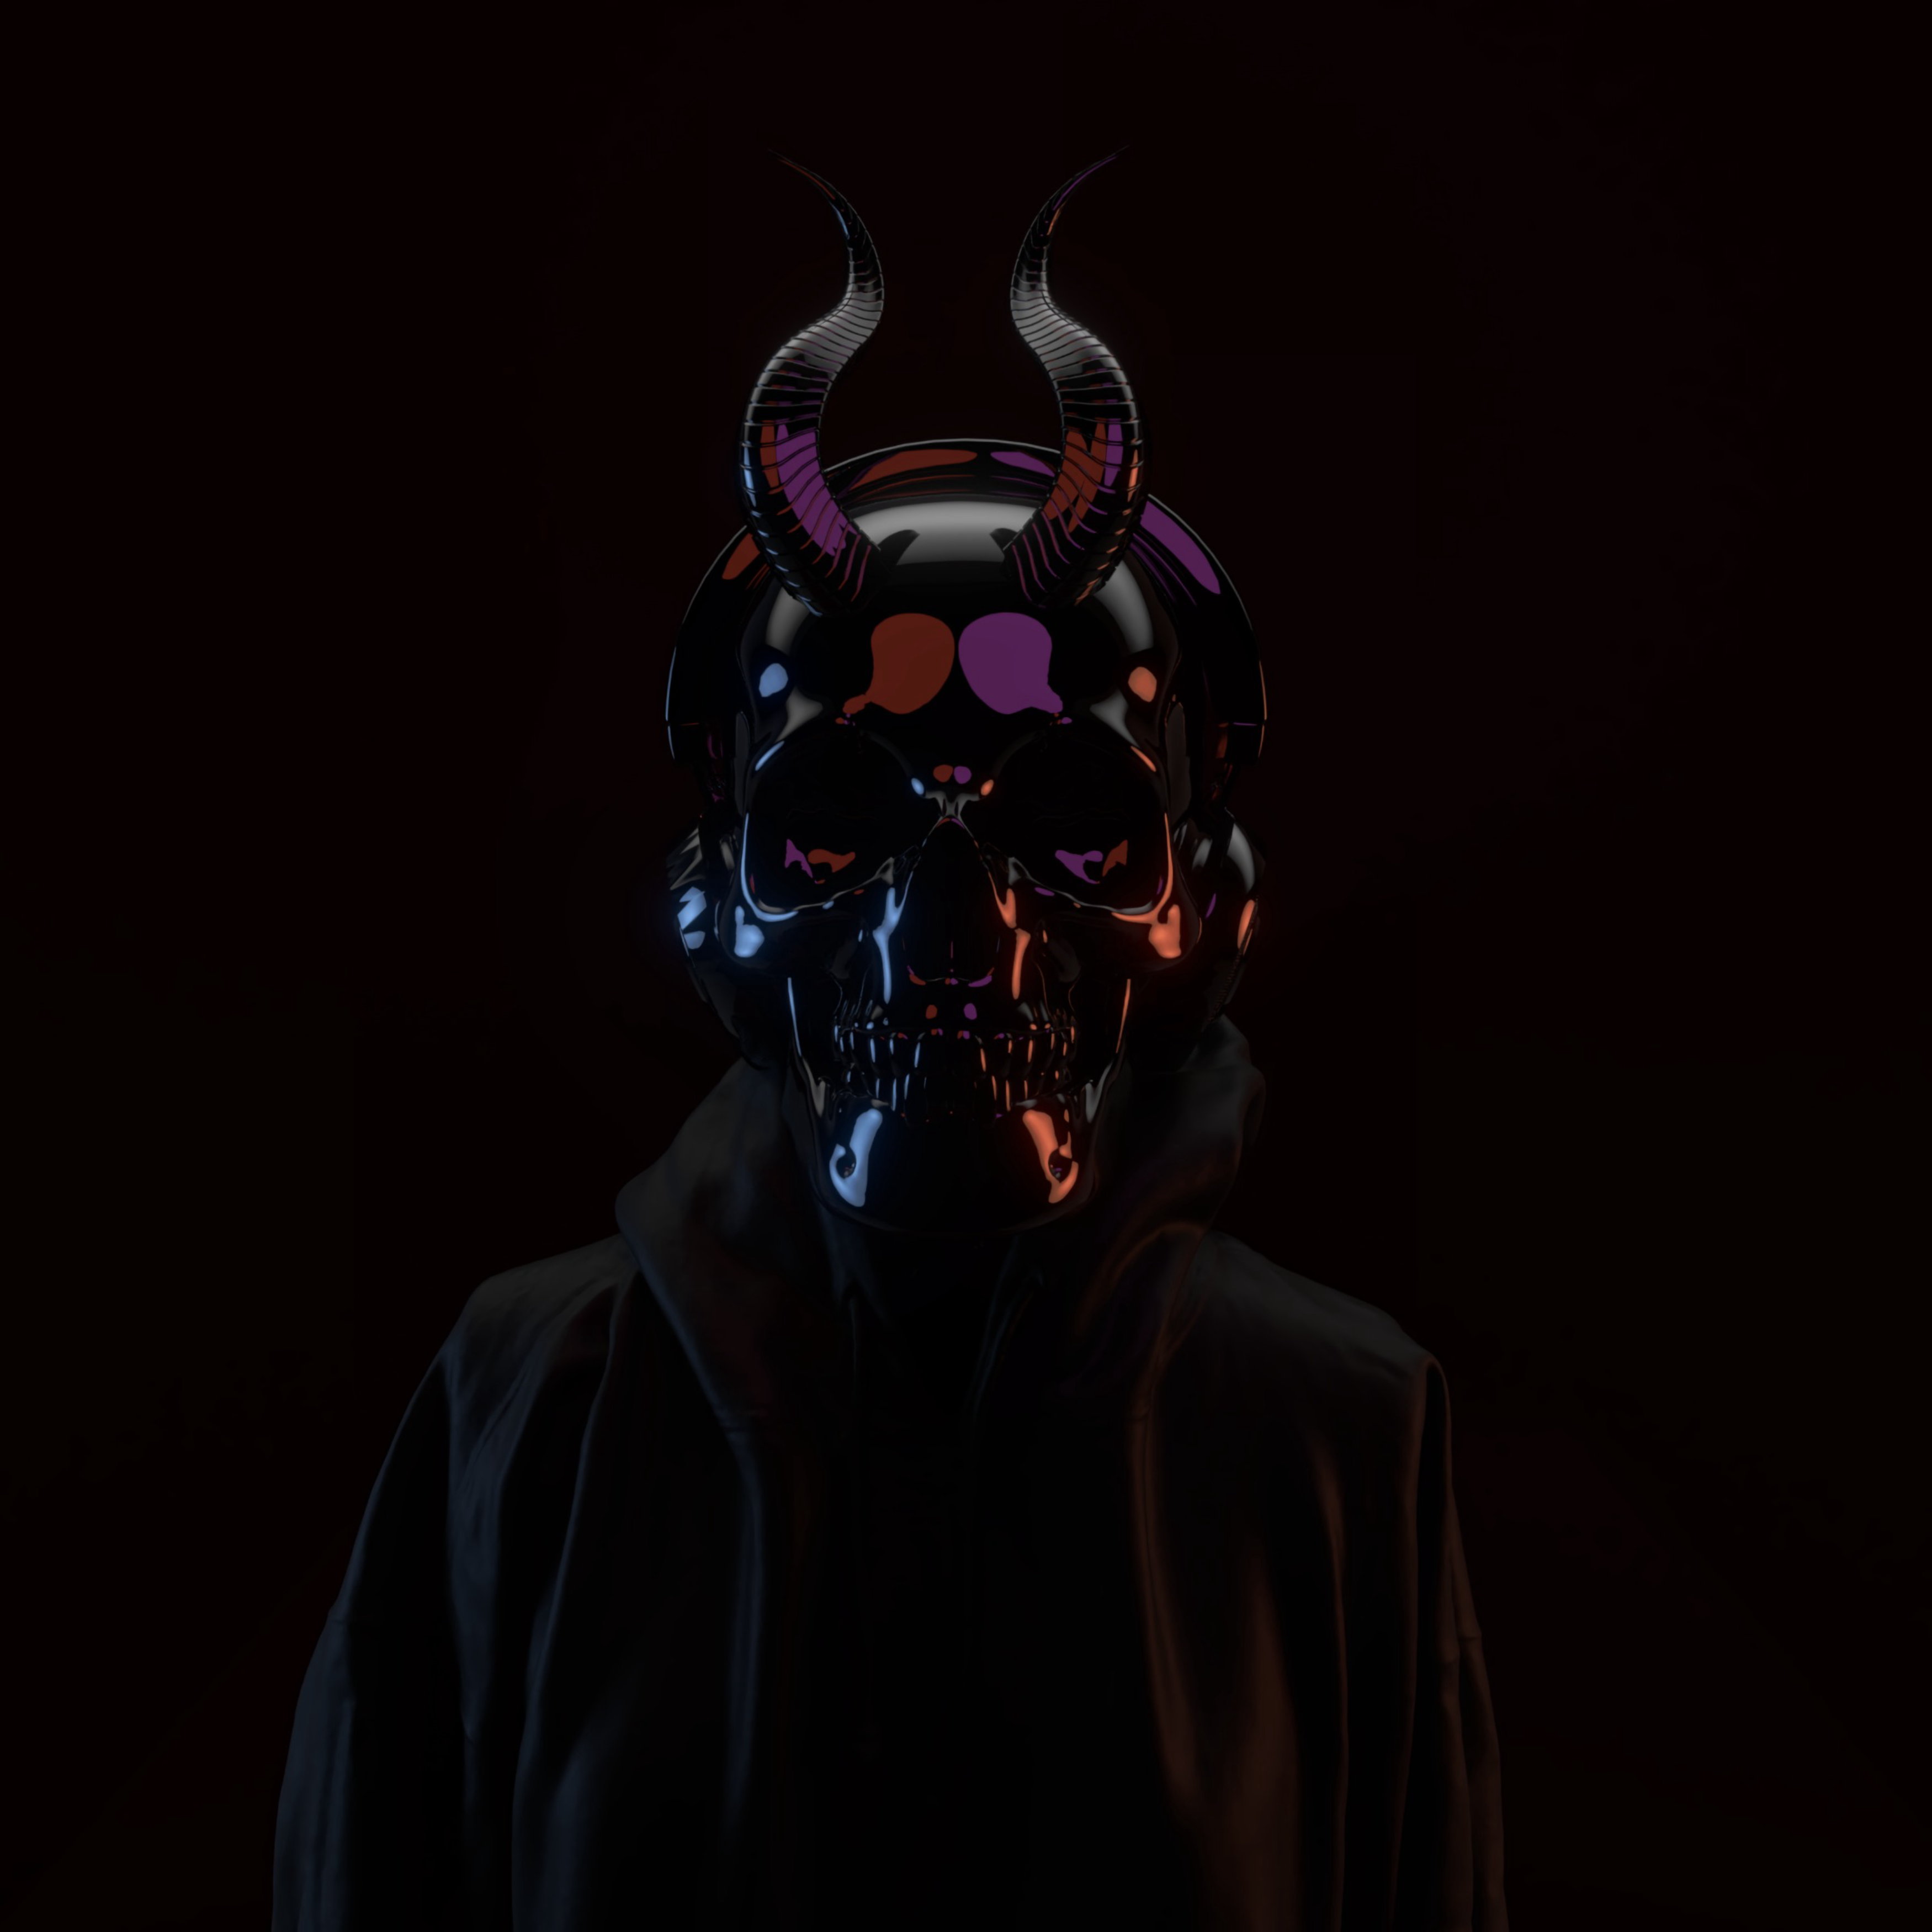 137788 download wallpaper Dark, Skull, Mask, Horns screensavers and pictures for free